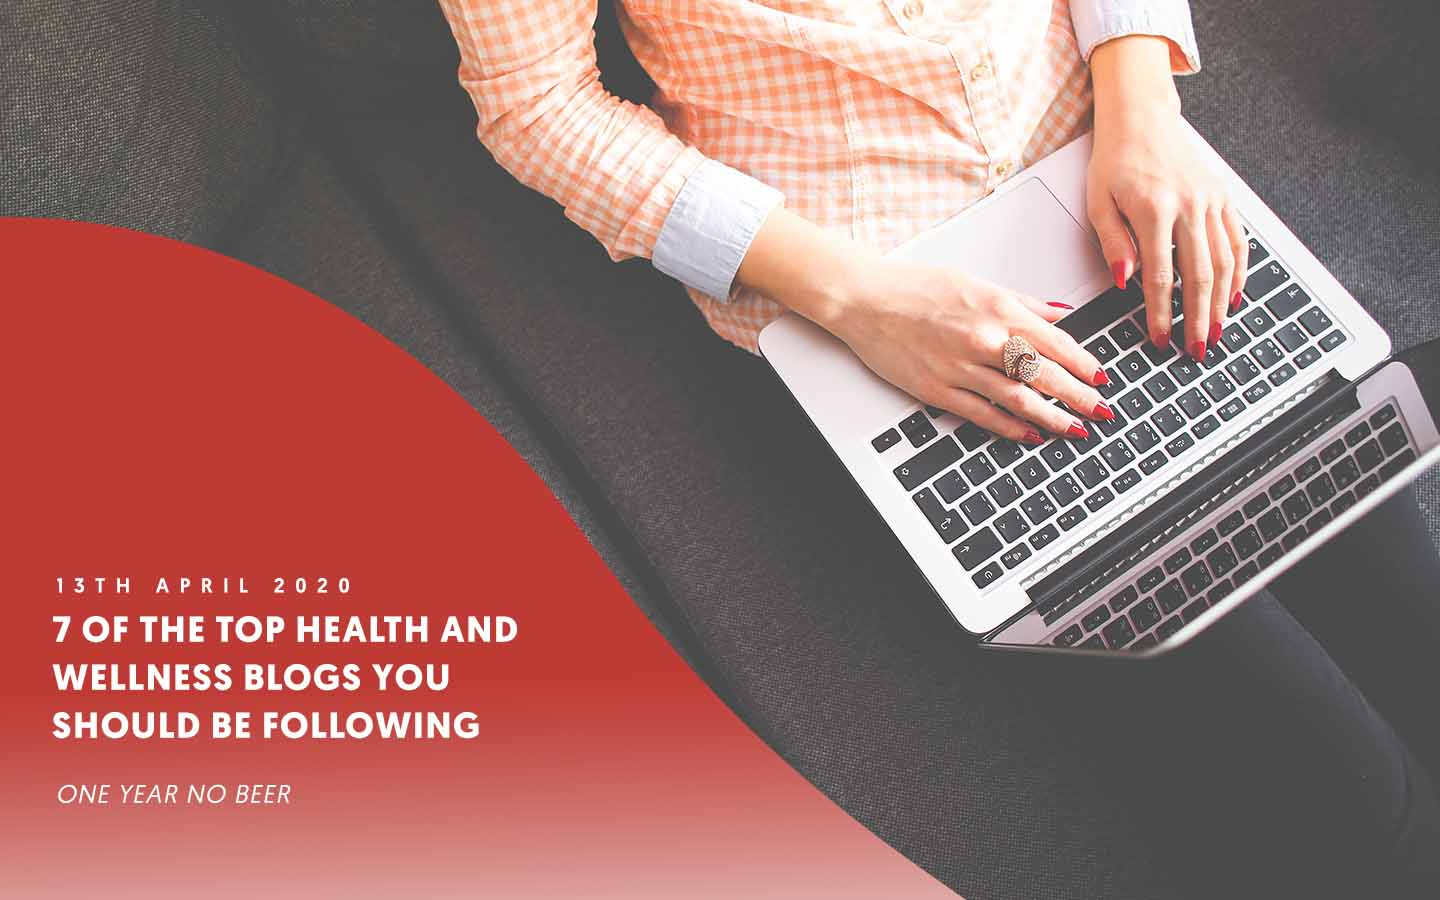 7 of the top health and wellness blogs you should be following